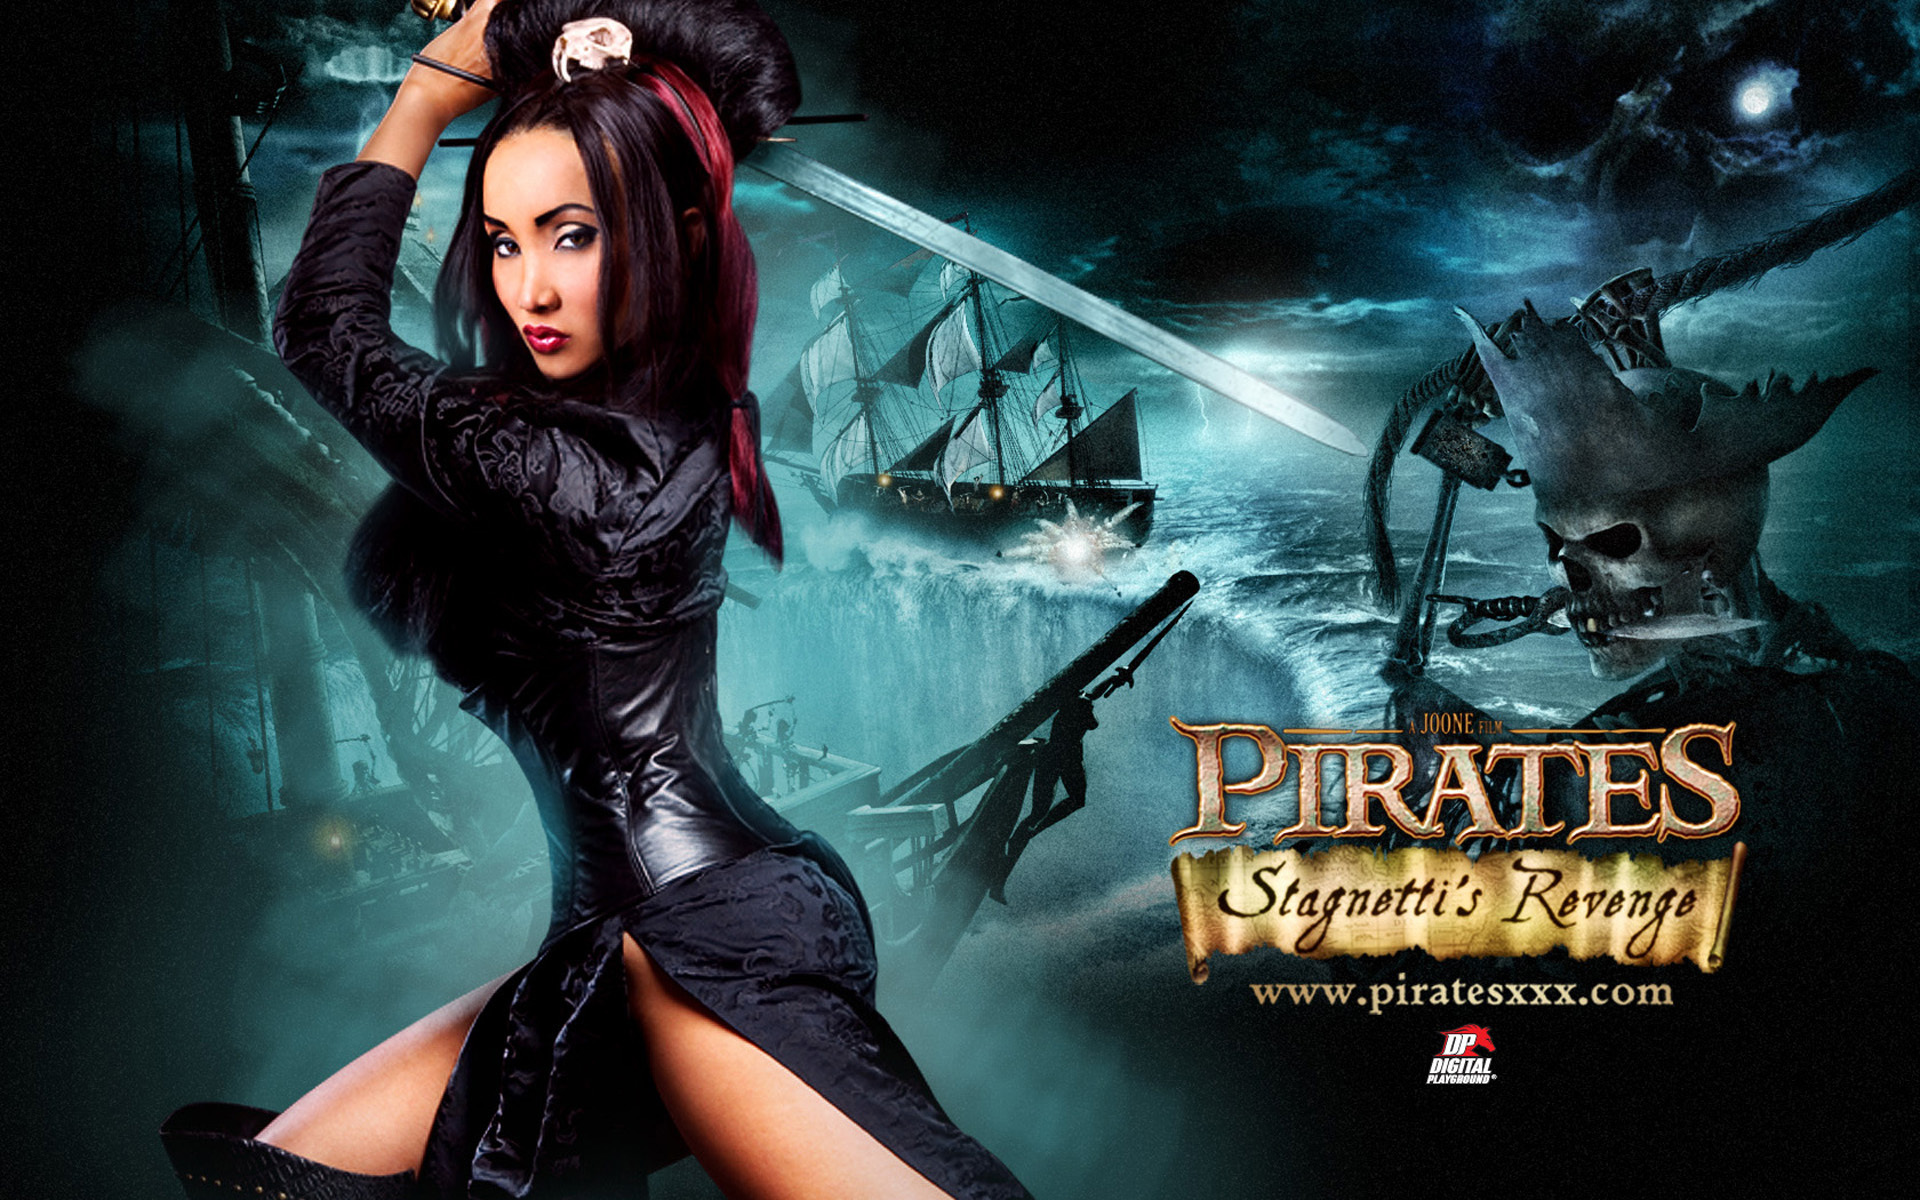 pirates of the caribbean full porn movie